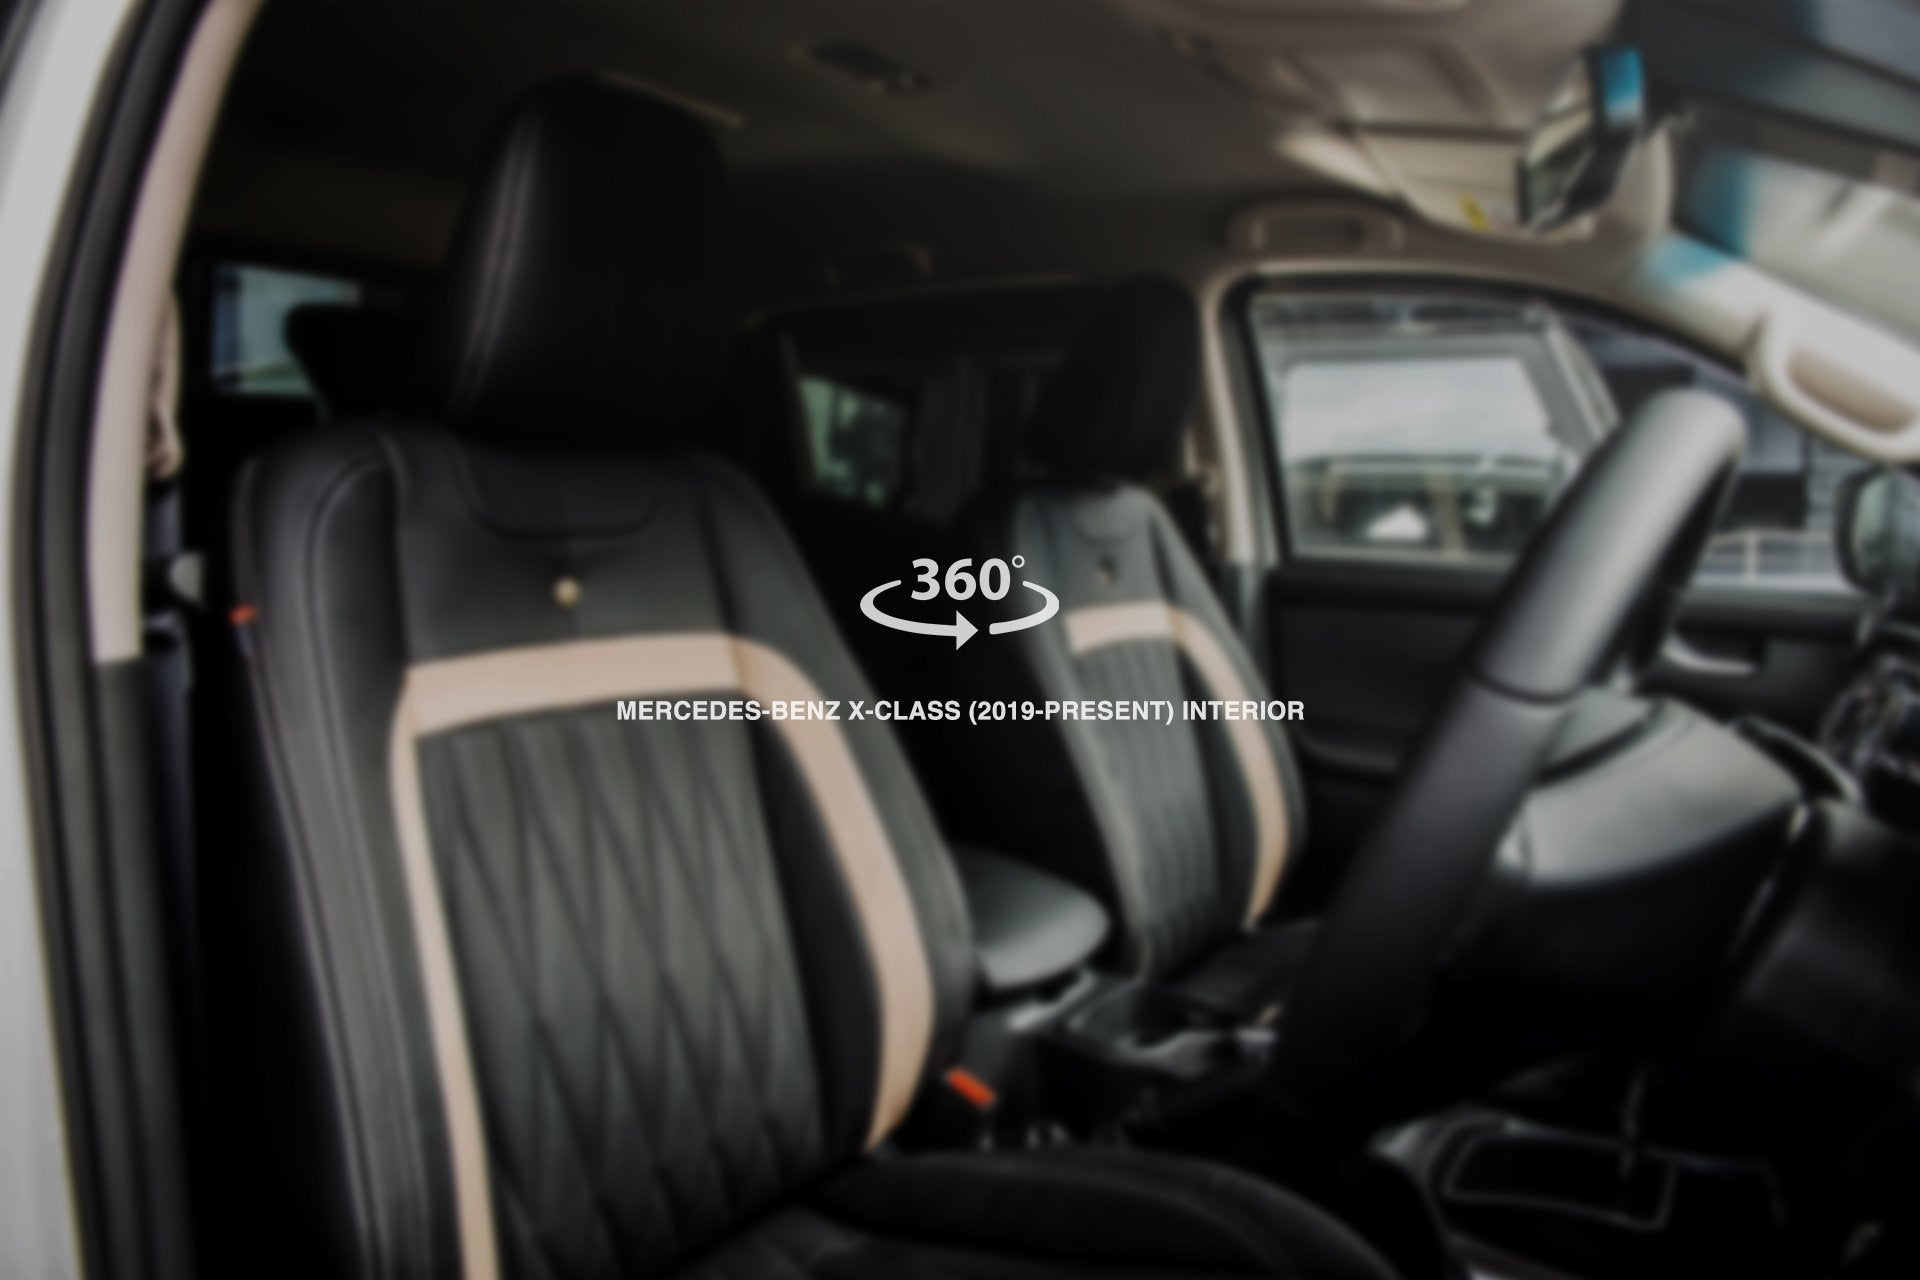 Mercedes X-Class (2019-Present) comfort Interior - Project Kahn